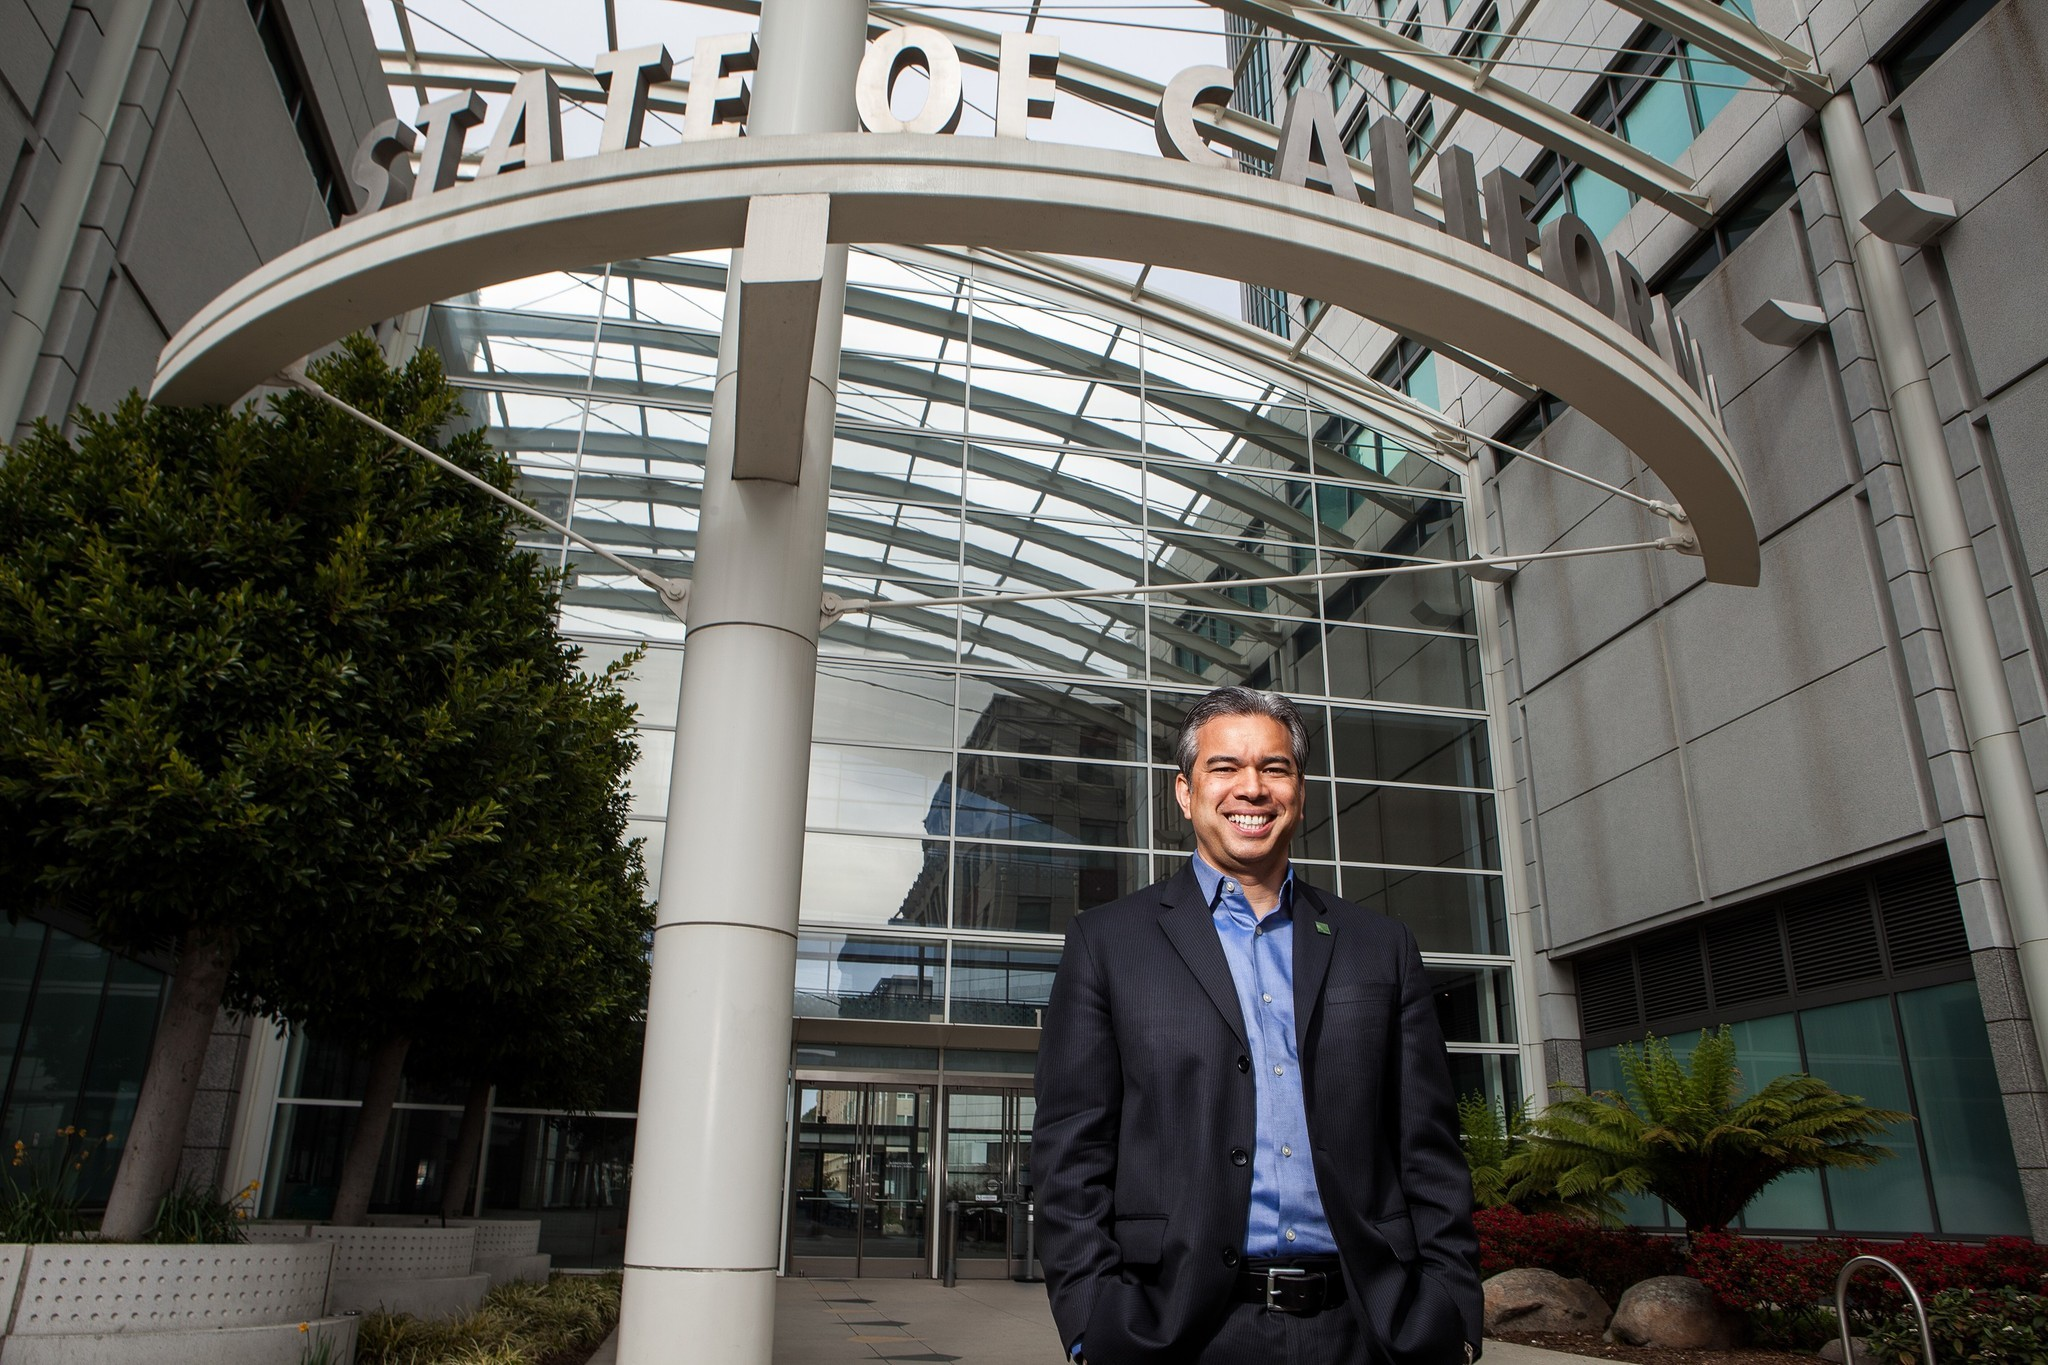 Assemblyman Rob Bonta (D-Alameda) has proposed a way to expedite the clearing of records of marijuana convictions. (Alexis Cuarezma / For The Times)